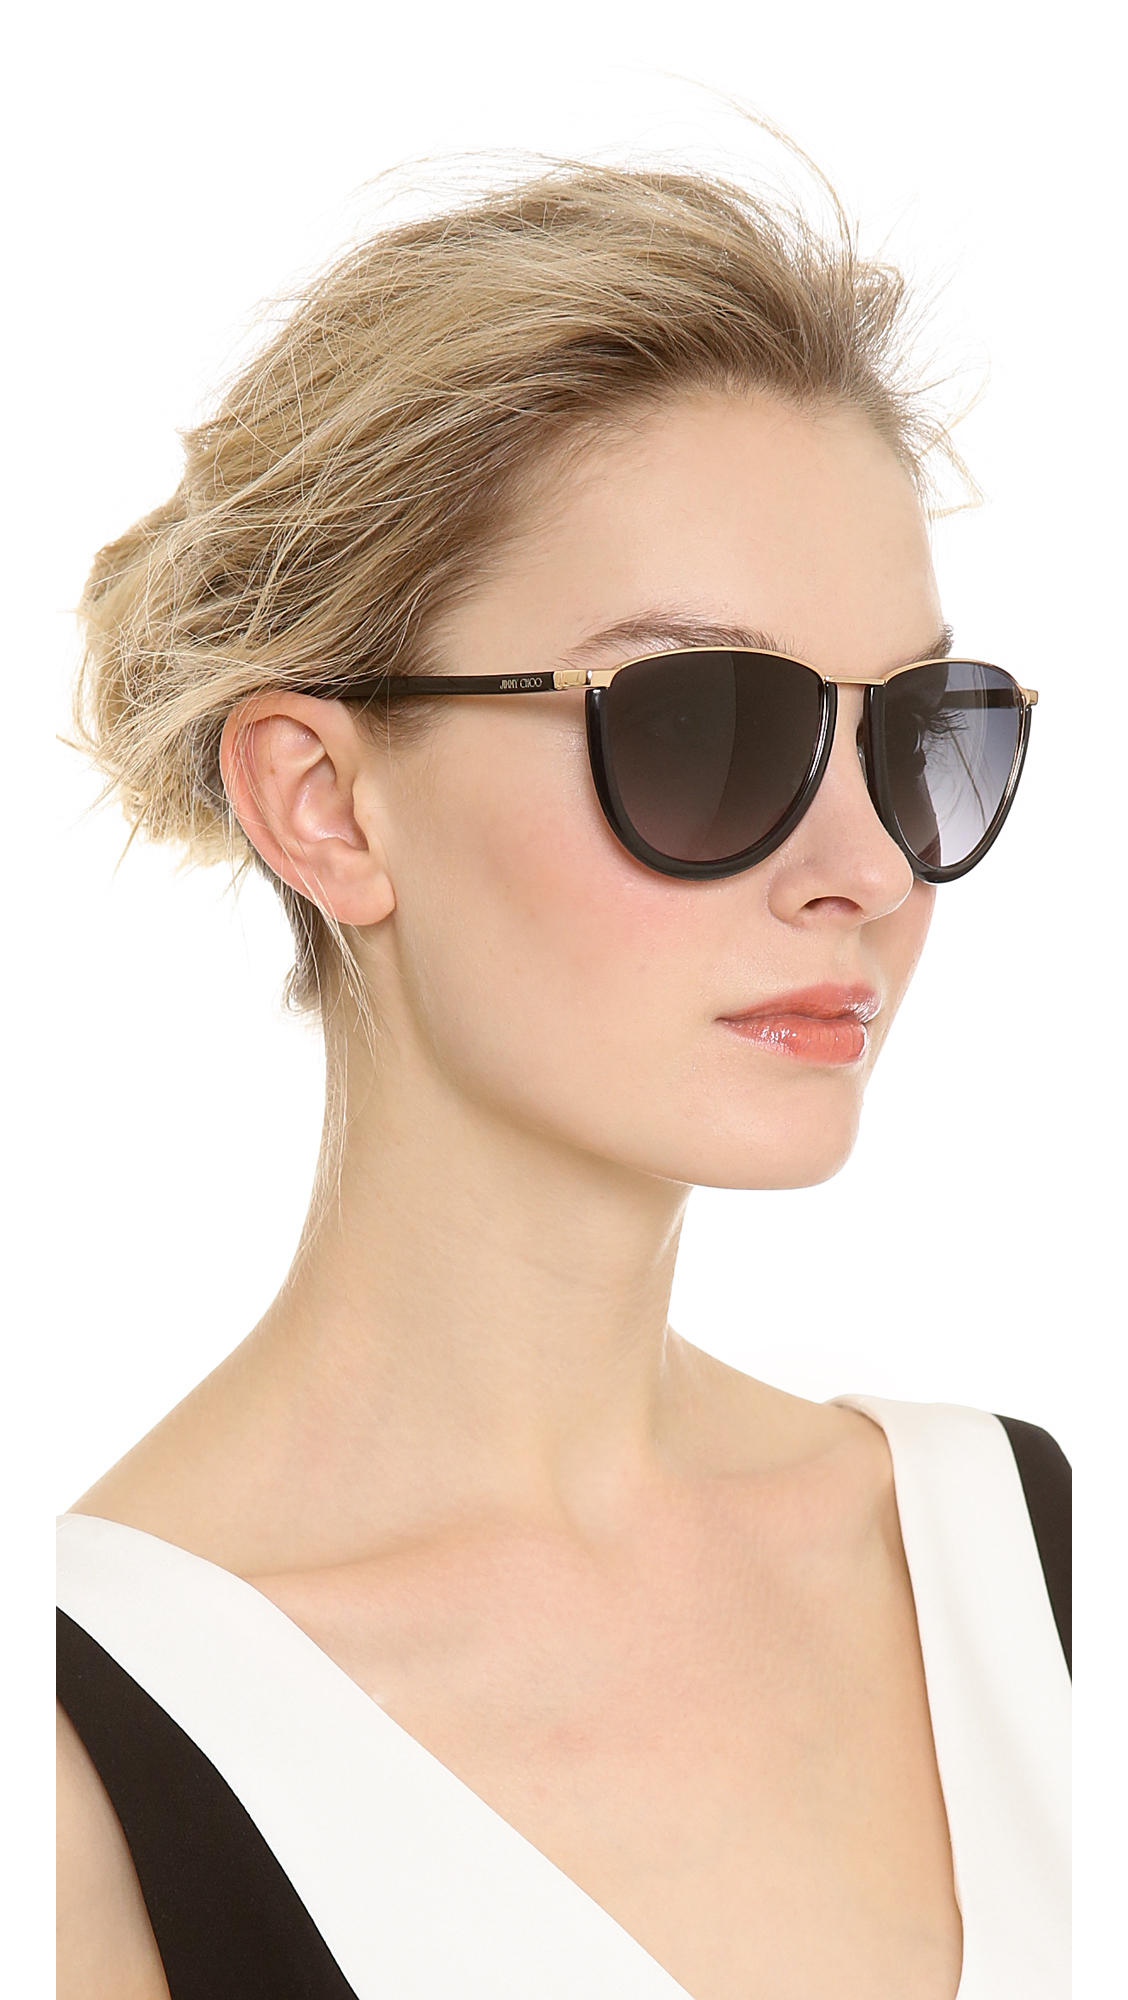 Lyst Jimmy Choo Mila Sunglasses Rose Gold Black Grey